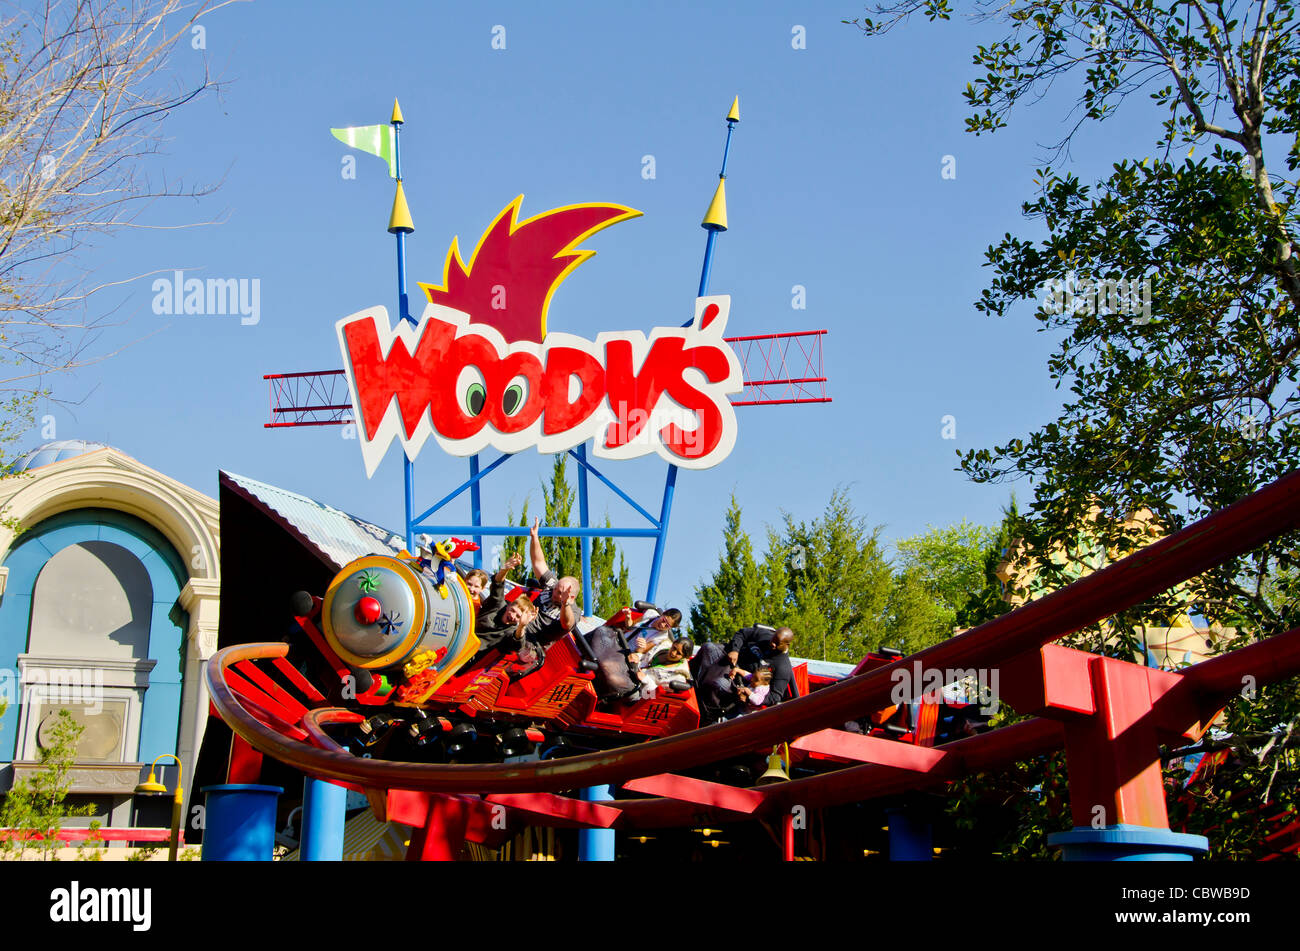 Woody Woodpecker Nuthouse Coaster with tourists at Universal Studios Orlando Florida - Stock Image